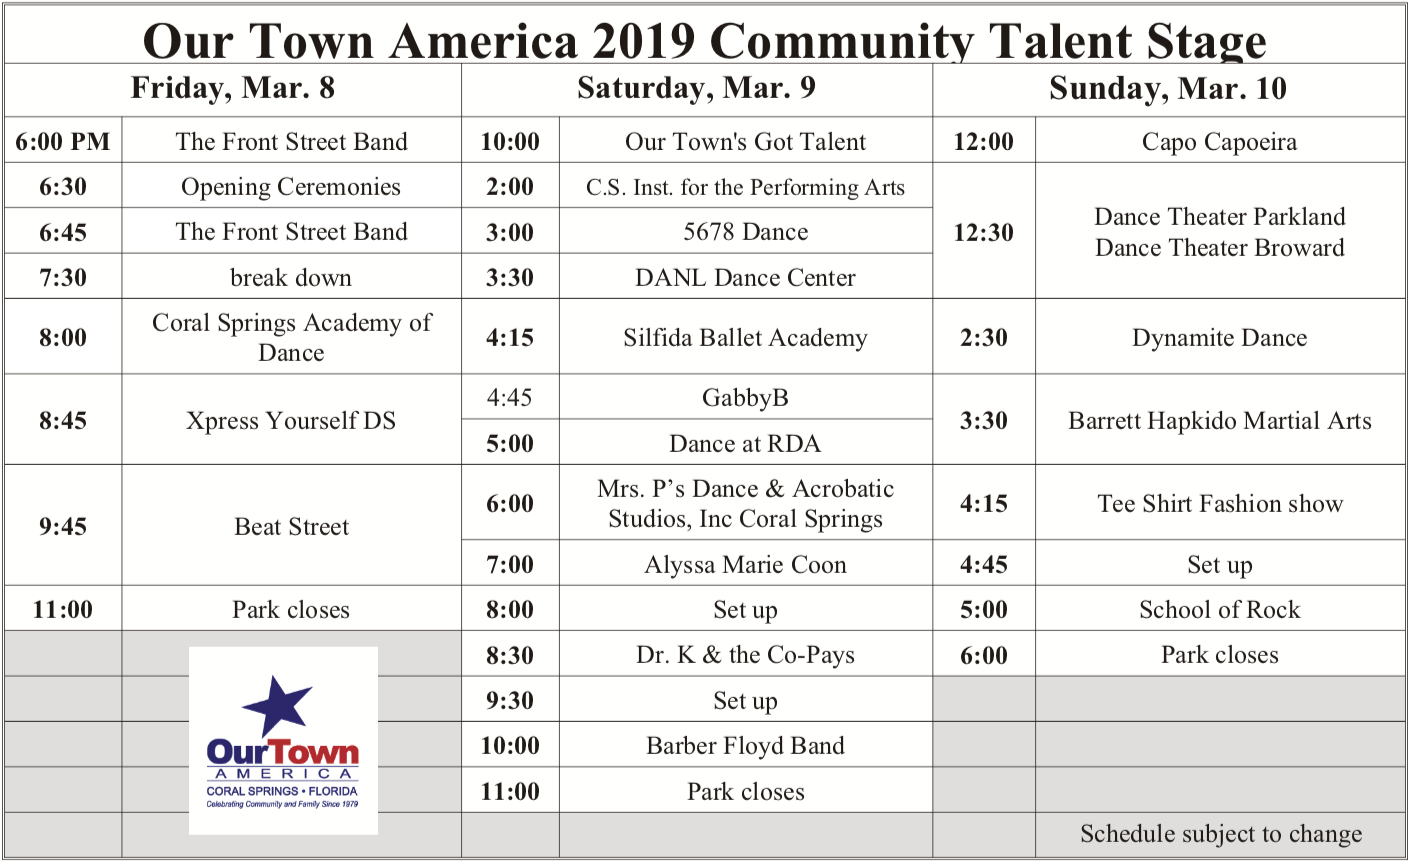 Community Talent Stage Schedule 2019